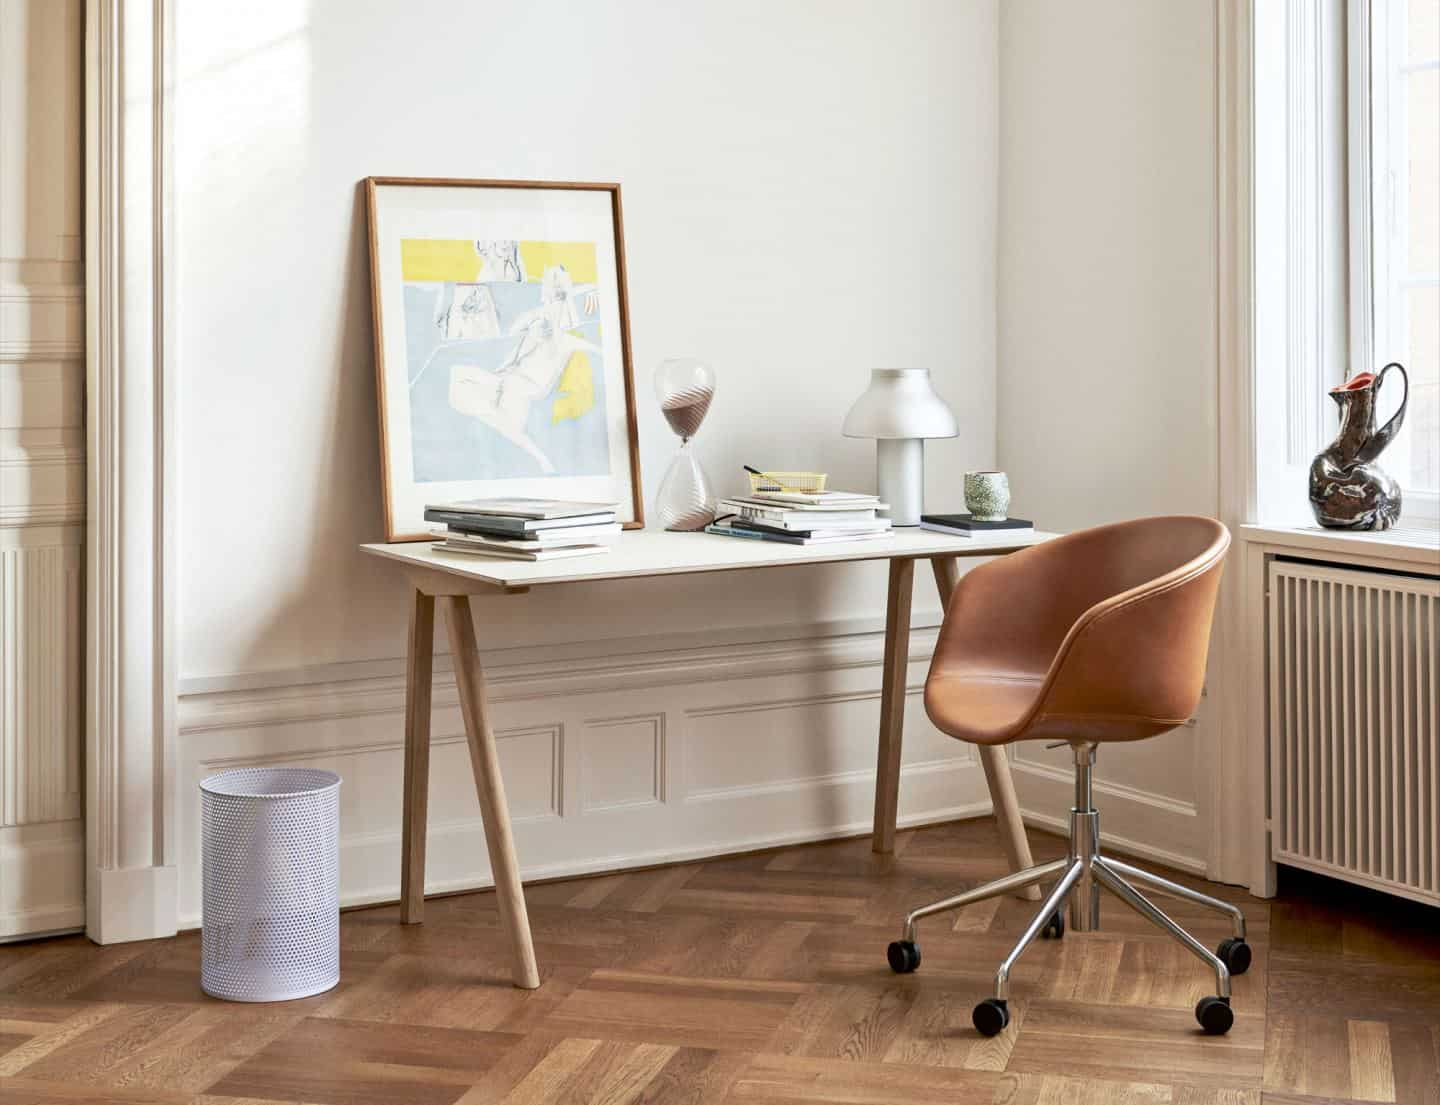 Space-saving desks. The Hay Copenhague CPH90 desk from Nest